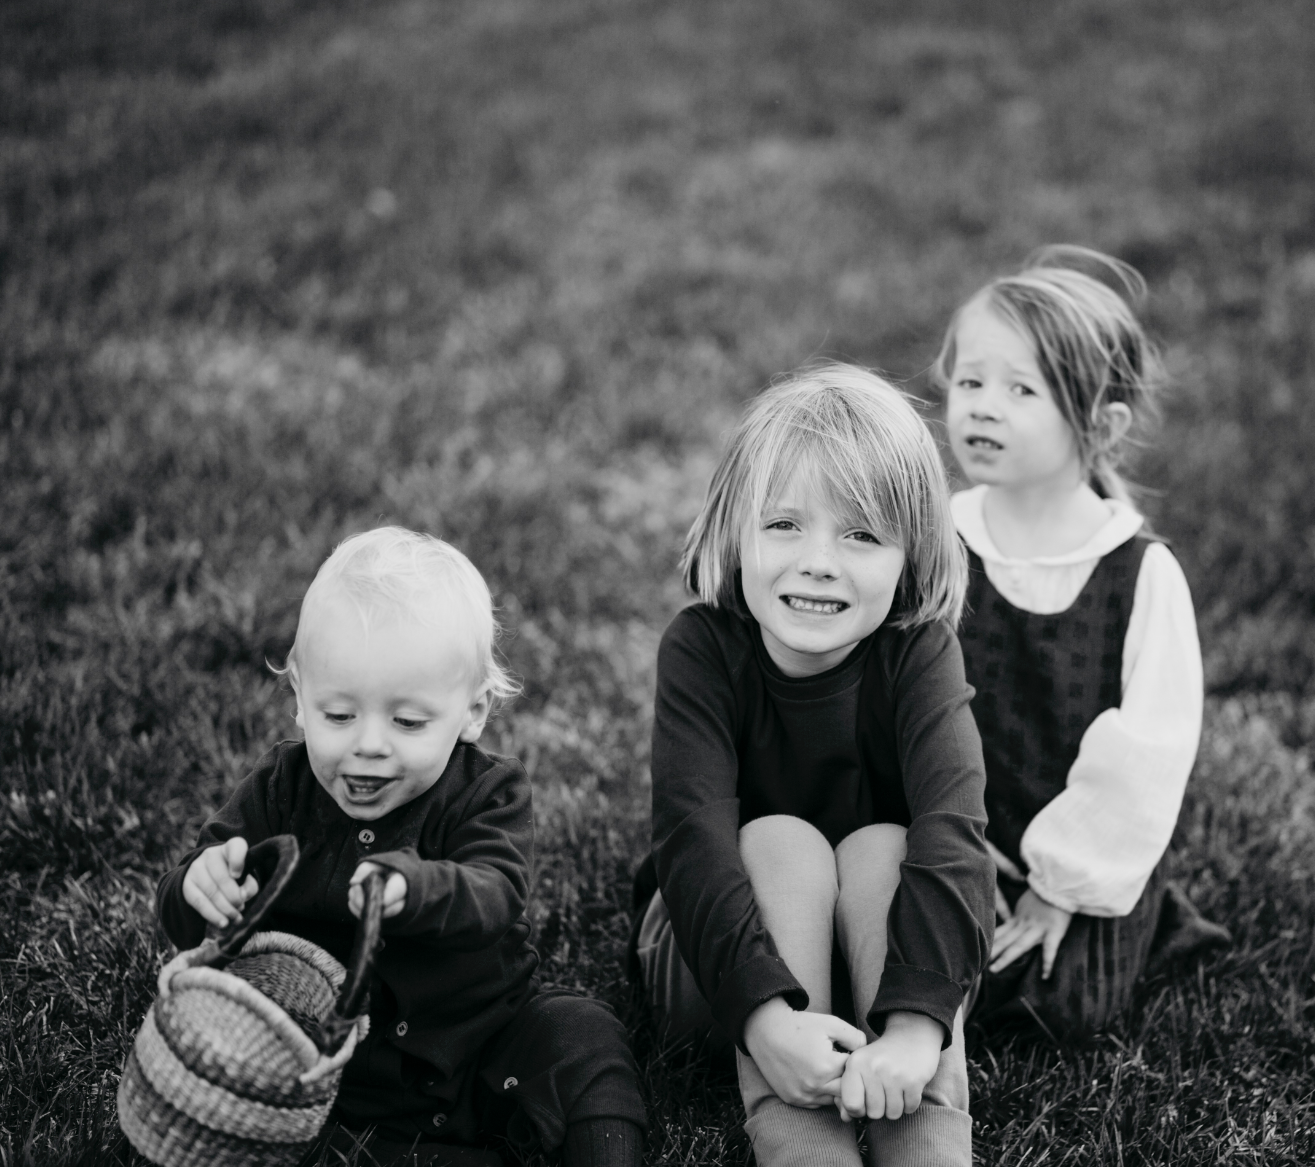 Three little munchkins. All adorably cute.  Love family photoshoots especially when I get to have fun with cuties like these 😍     . . . . . .   #makeportraits #postmoreportraits #postthepeople #portraitisreligion #livefolk #liveauthentic #lookslikefilm #photographysouls #photographyislifee #wanderlust #L0tsabraids #vscogood_ #vscogoodshot #tangledinfilm #thatsdarling #thecoolmagazine #quietthechaos